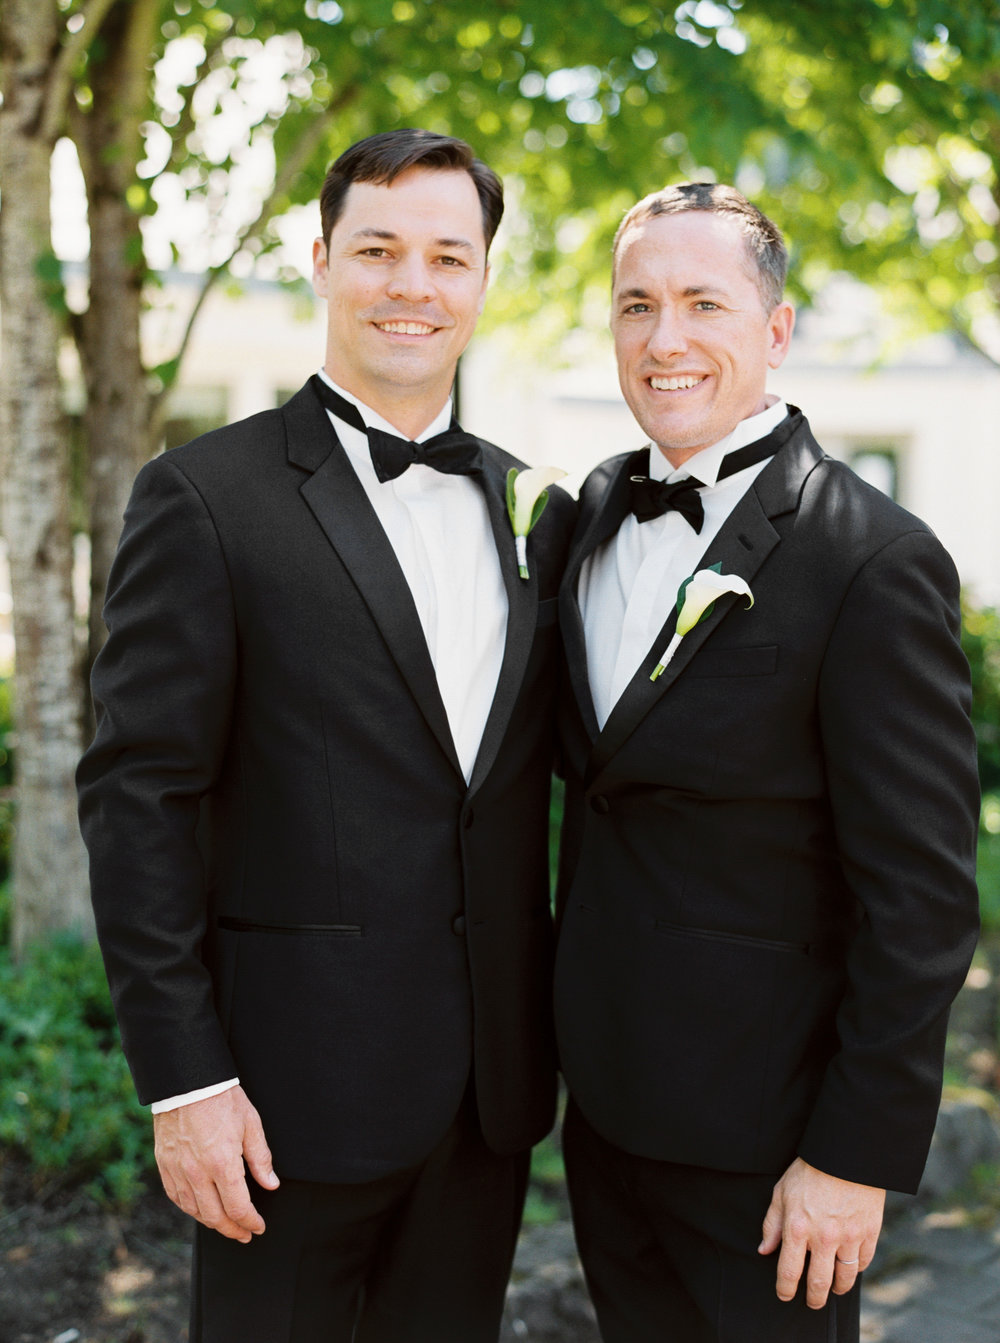 064OutliveCreative_Travel_Photographer_Videographer_Lewis&Clark_Oregon_Elegant_BlackTie_Destination_Wedding.jpg